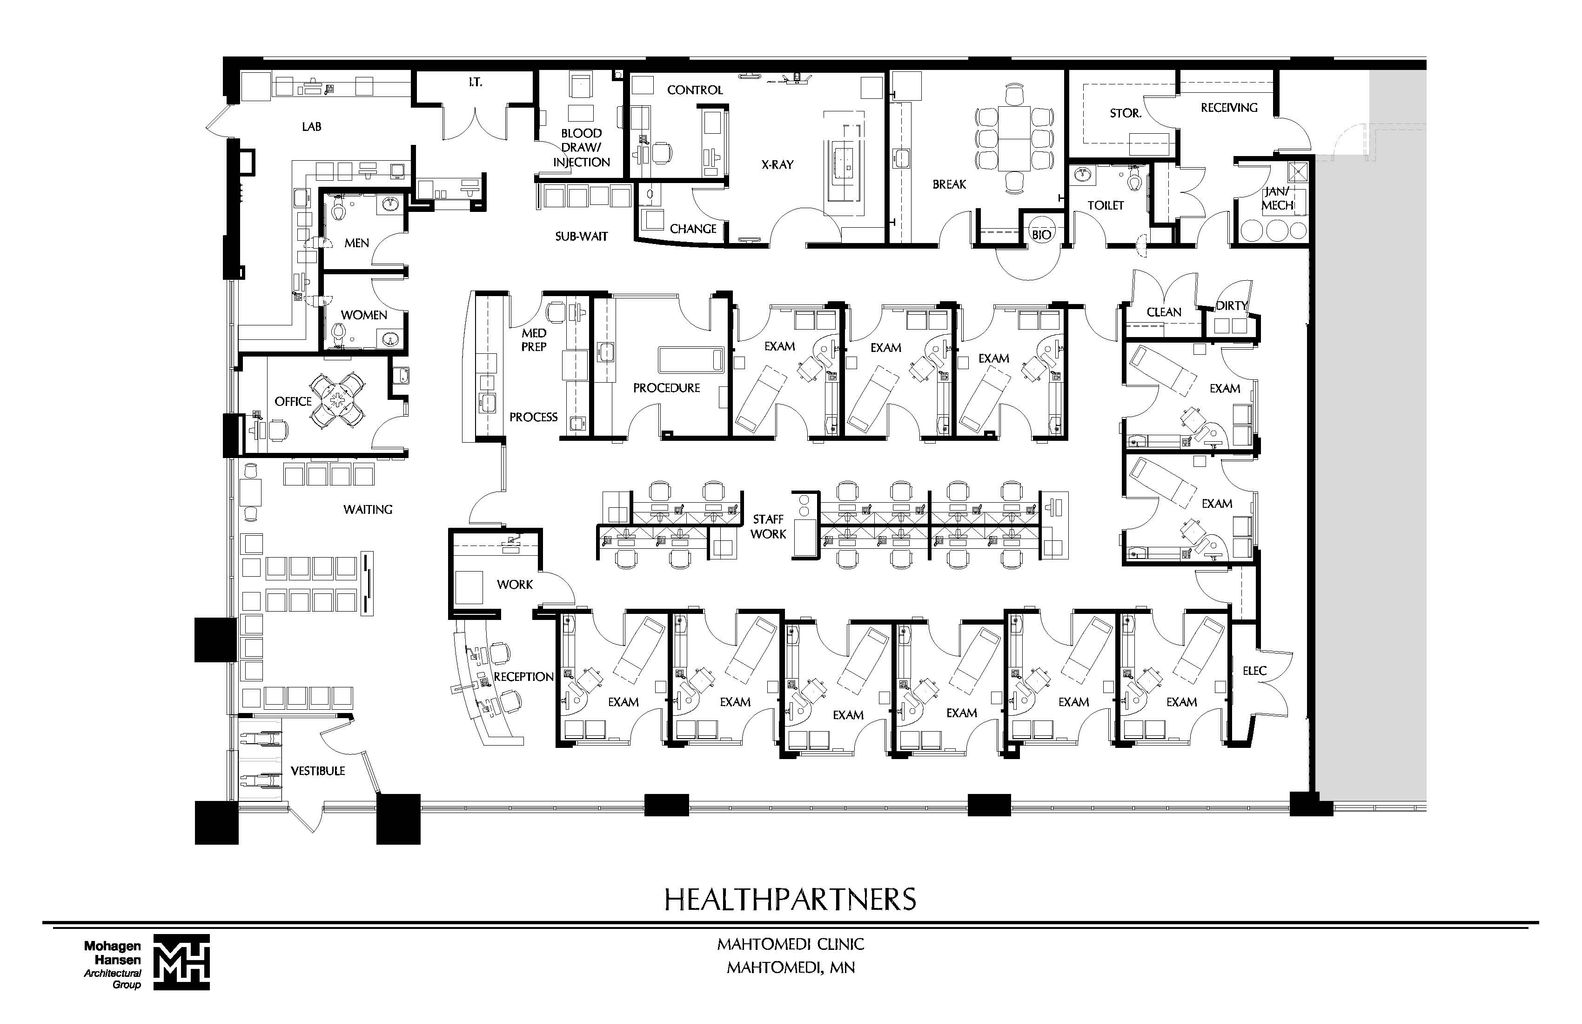 Cs interior design for X ray room floor plan